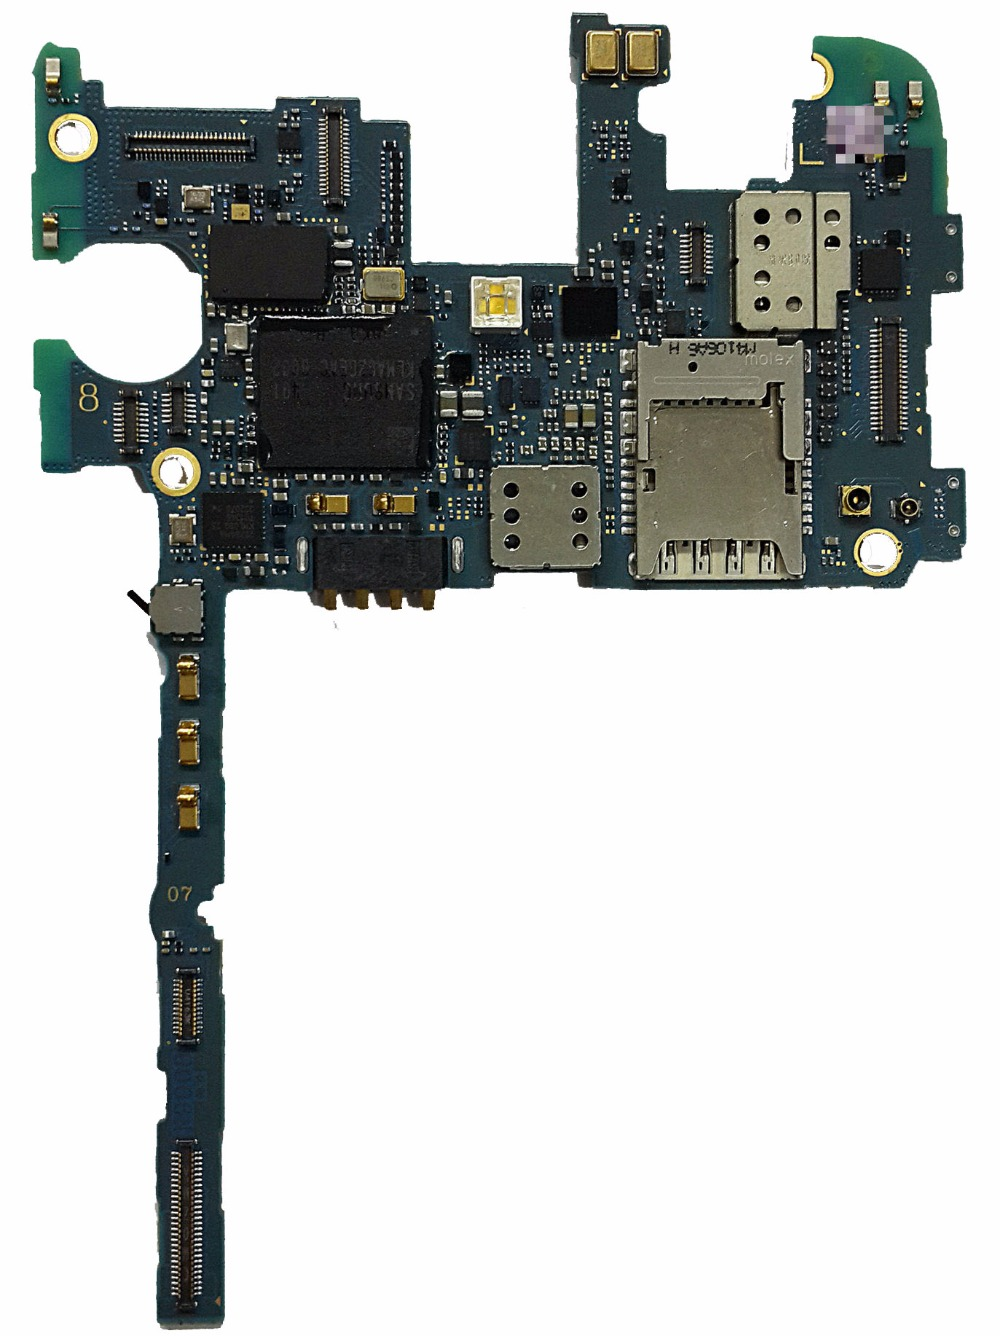 Full Working Used Board For Samsung Galaxy Note3 Note 3 N900 32G Unlock Motherboard Logic Mother BoardFull Working Used Board For Samsung Galaxy Note3 Note 3 N900 32G Unlock Motherboard Logic Mother Board